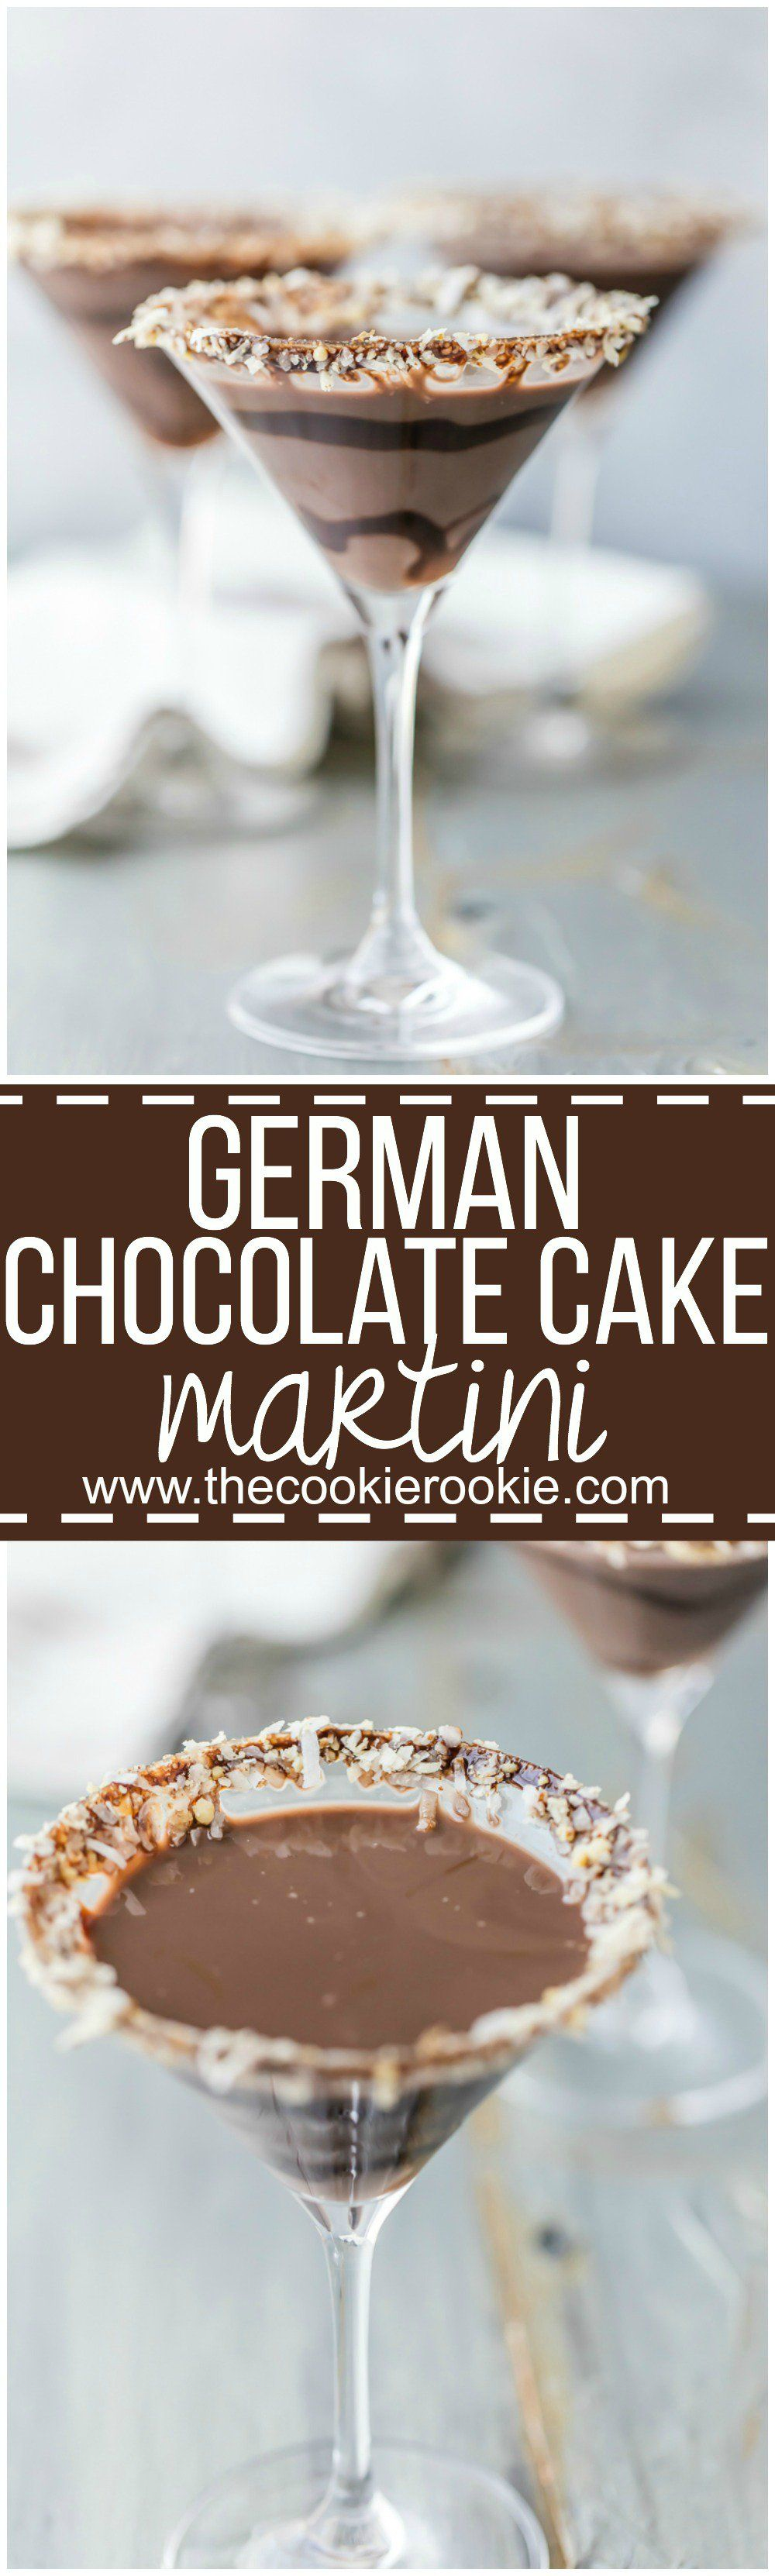 German Chocolate Cake Martini Recipe Martinis And